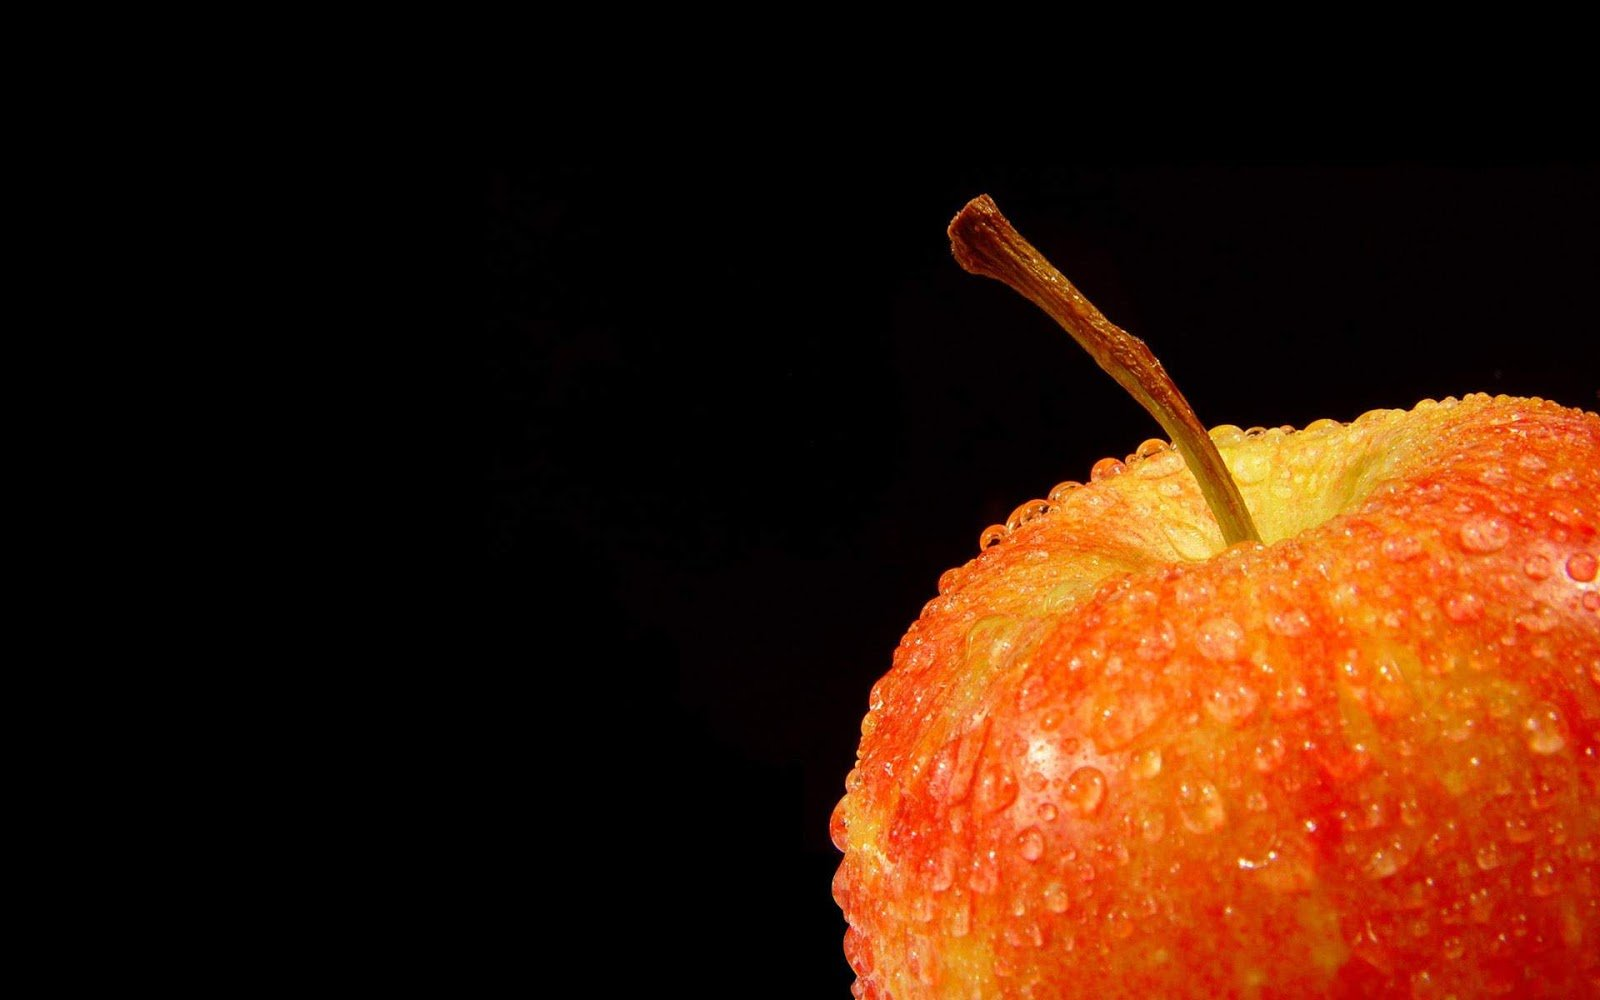 and White Wallpapers Orange Apple on Black Background Black Orange 1600x1000